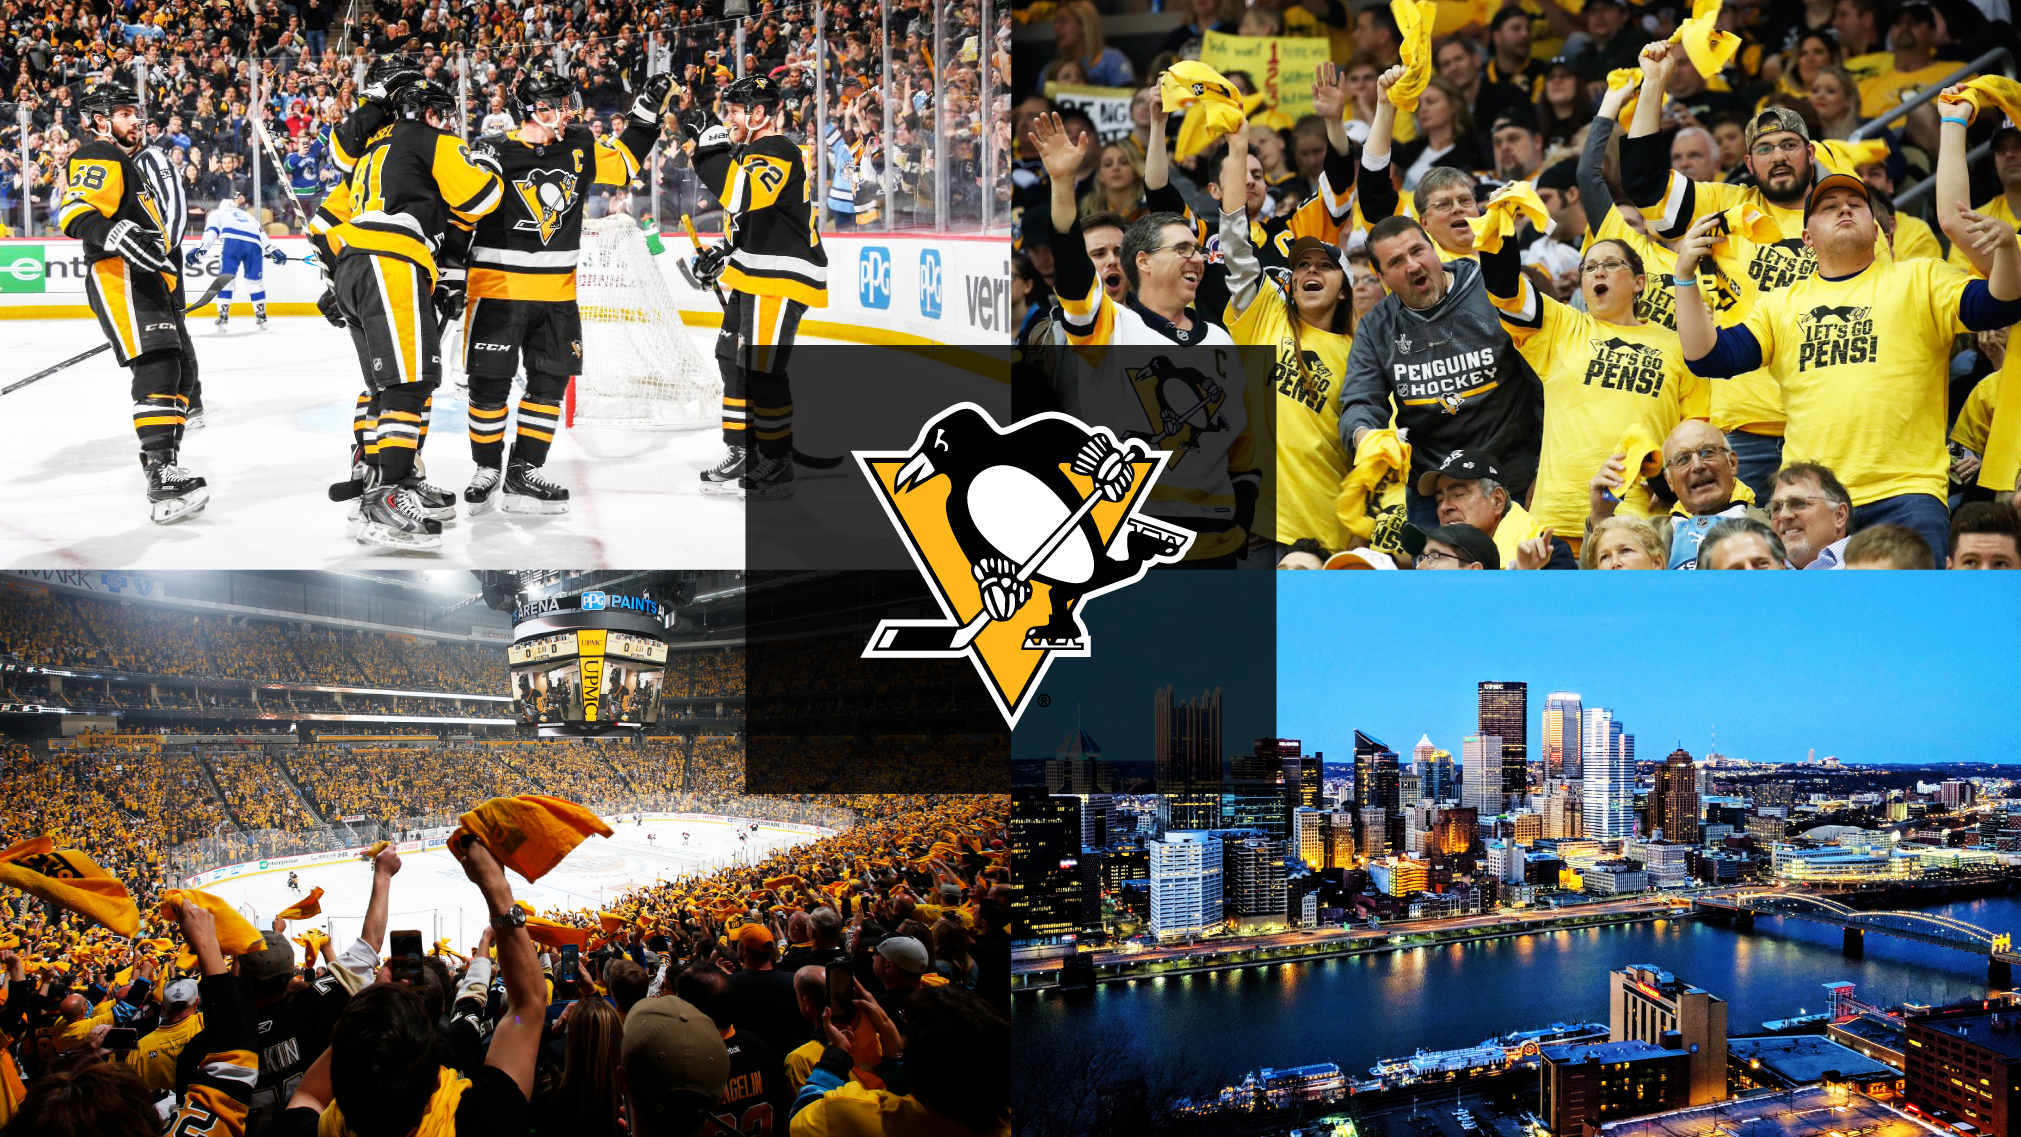 Pittsburgh-Penguins-Turnkey Search.jpg